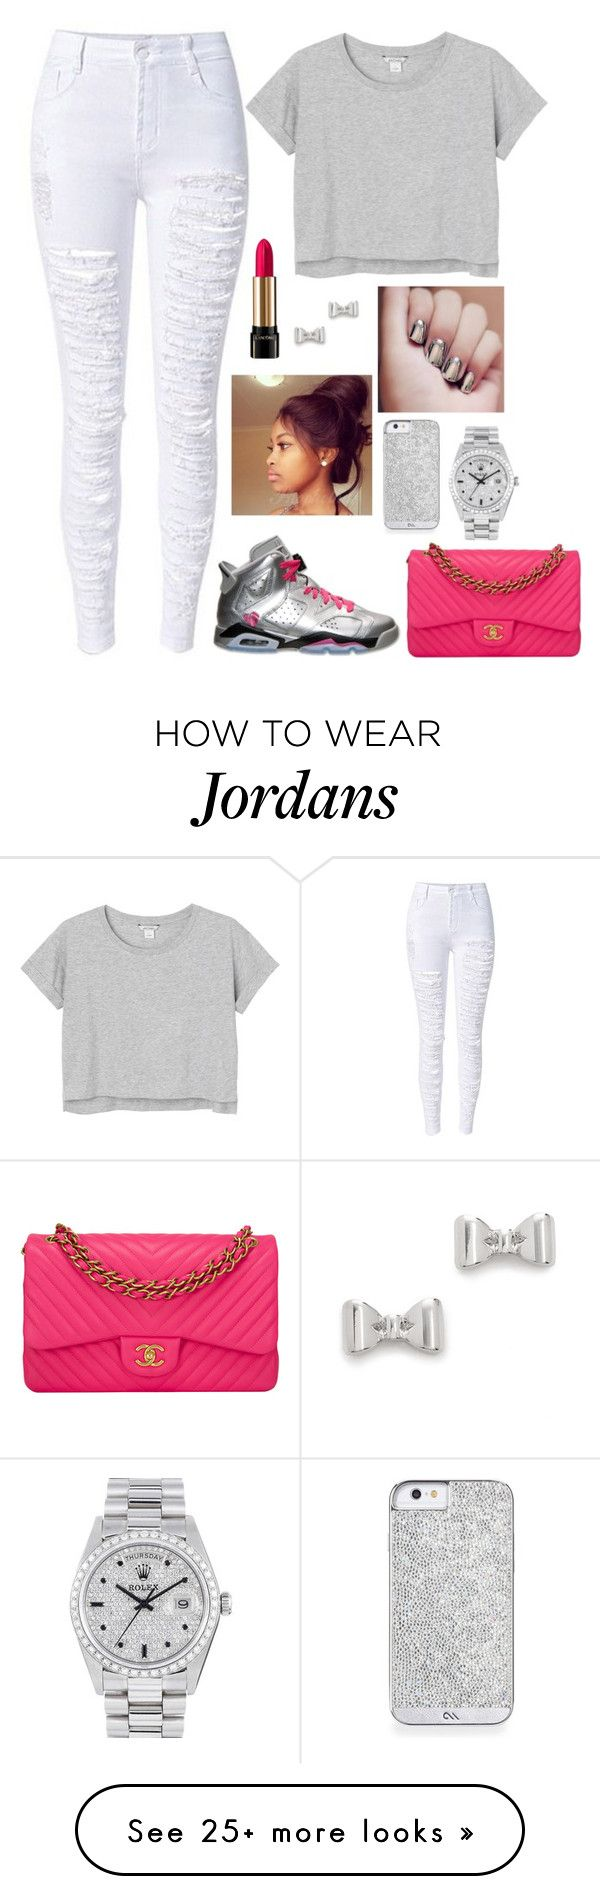 """Untitled #278"" by nun-for-free on Polyvore featuring moda, Retrò, Monki, Lancôme, Chanel, Marc by Marc Jacobs y Rolex"